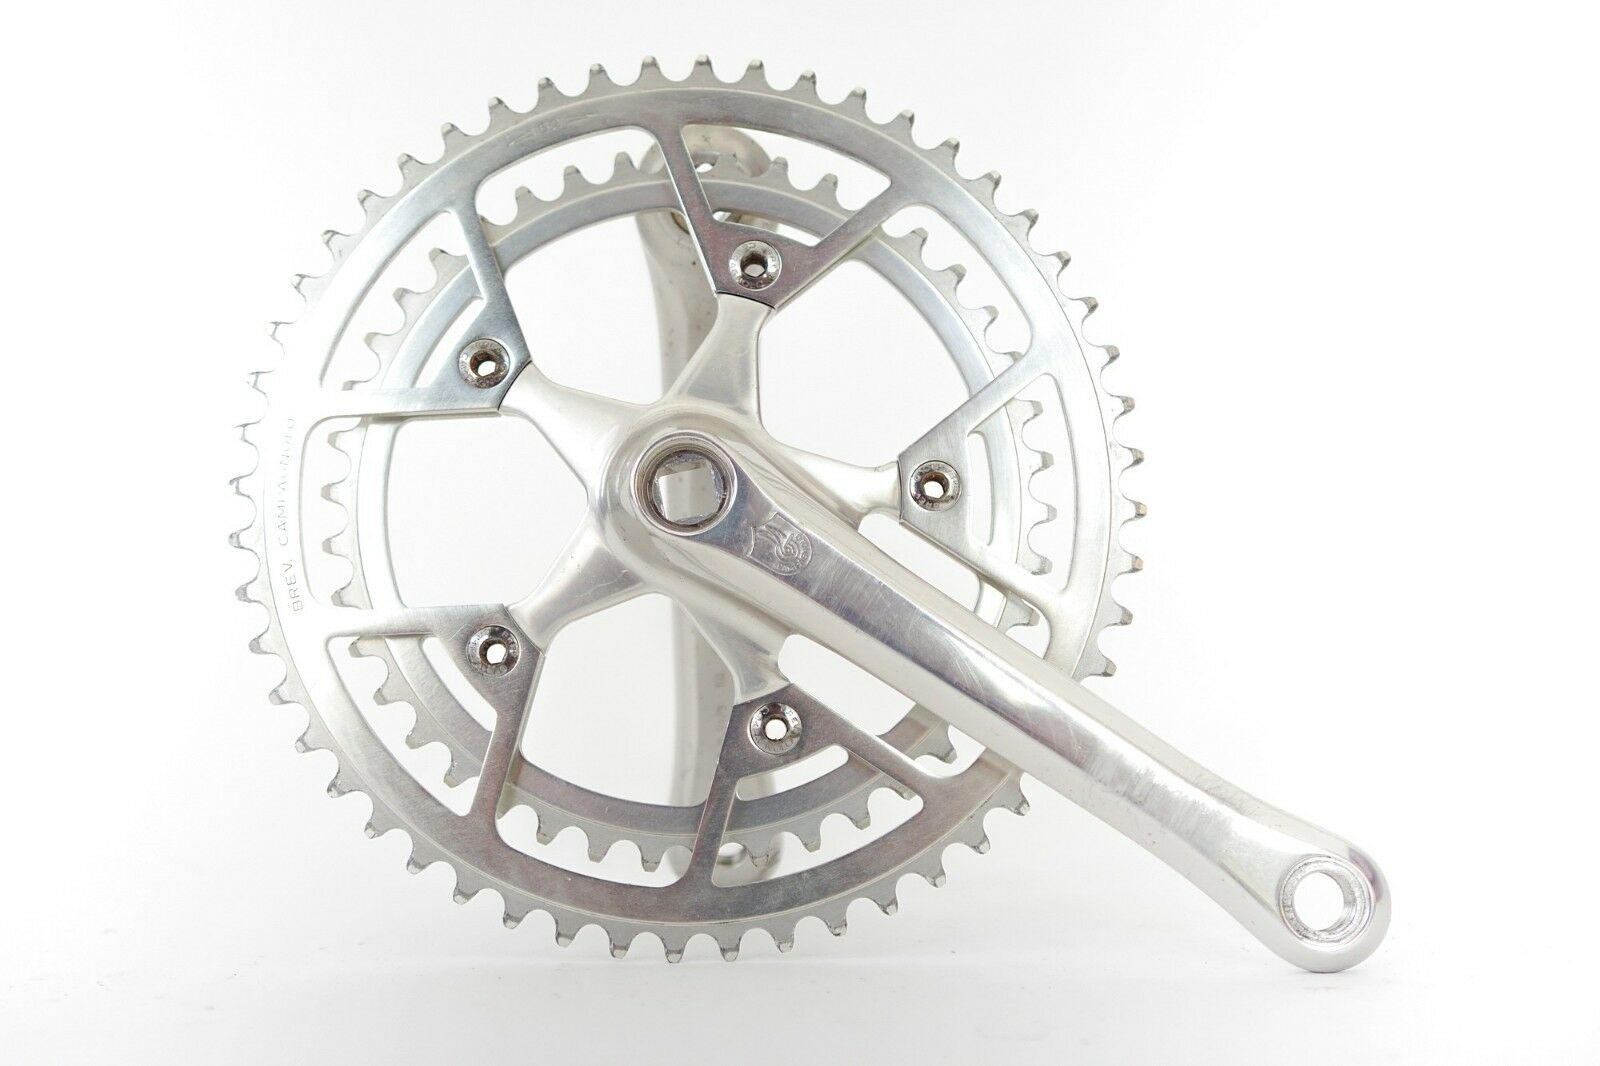 Vintage Campagnolo Victory Triomphe Bicycle  Crankset Double 42 52T 170mm  beautiful